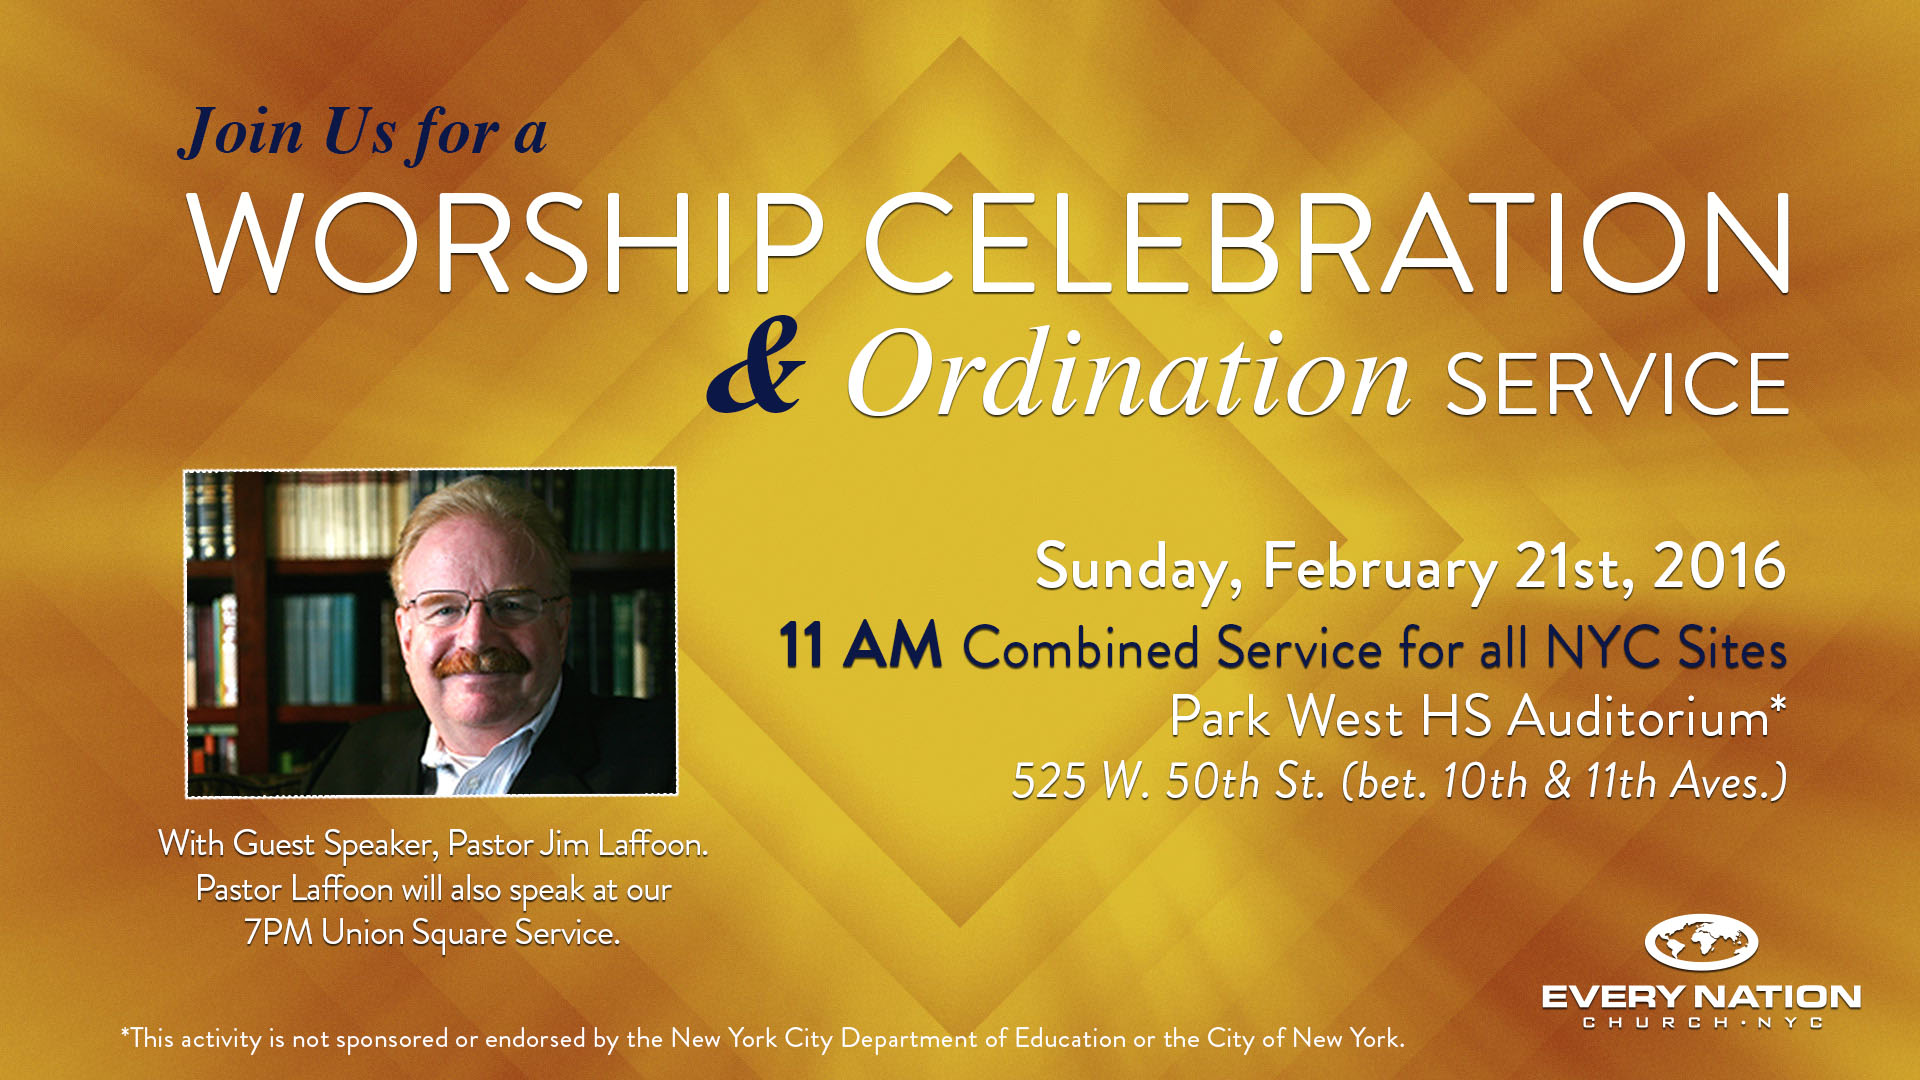 All Site Worship and Ordination Service – Sunday, Feb. 21st at 11AM